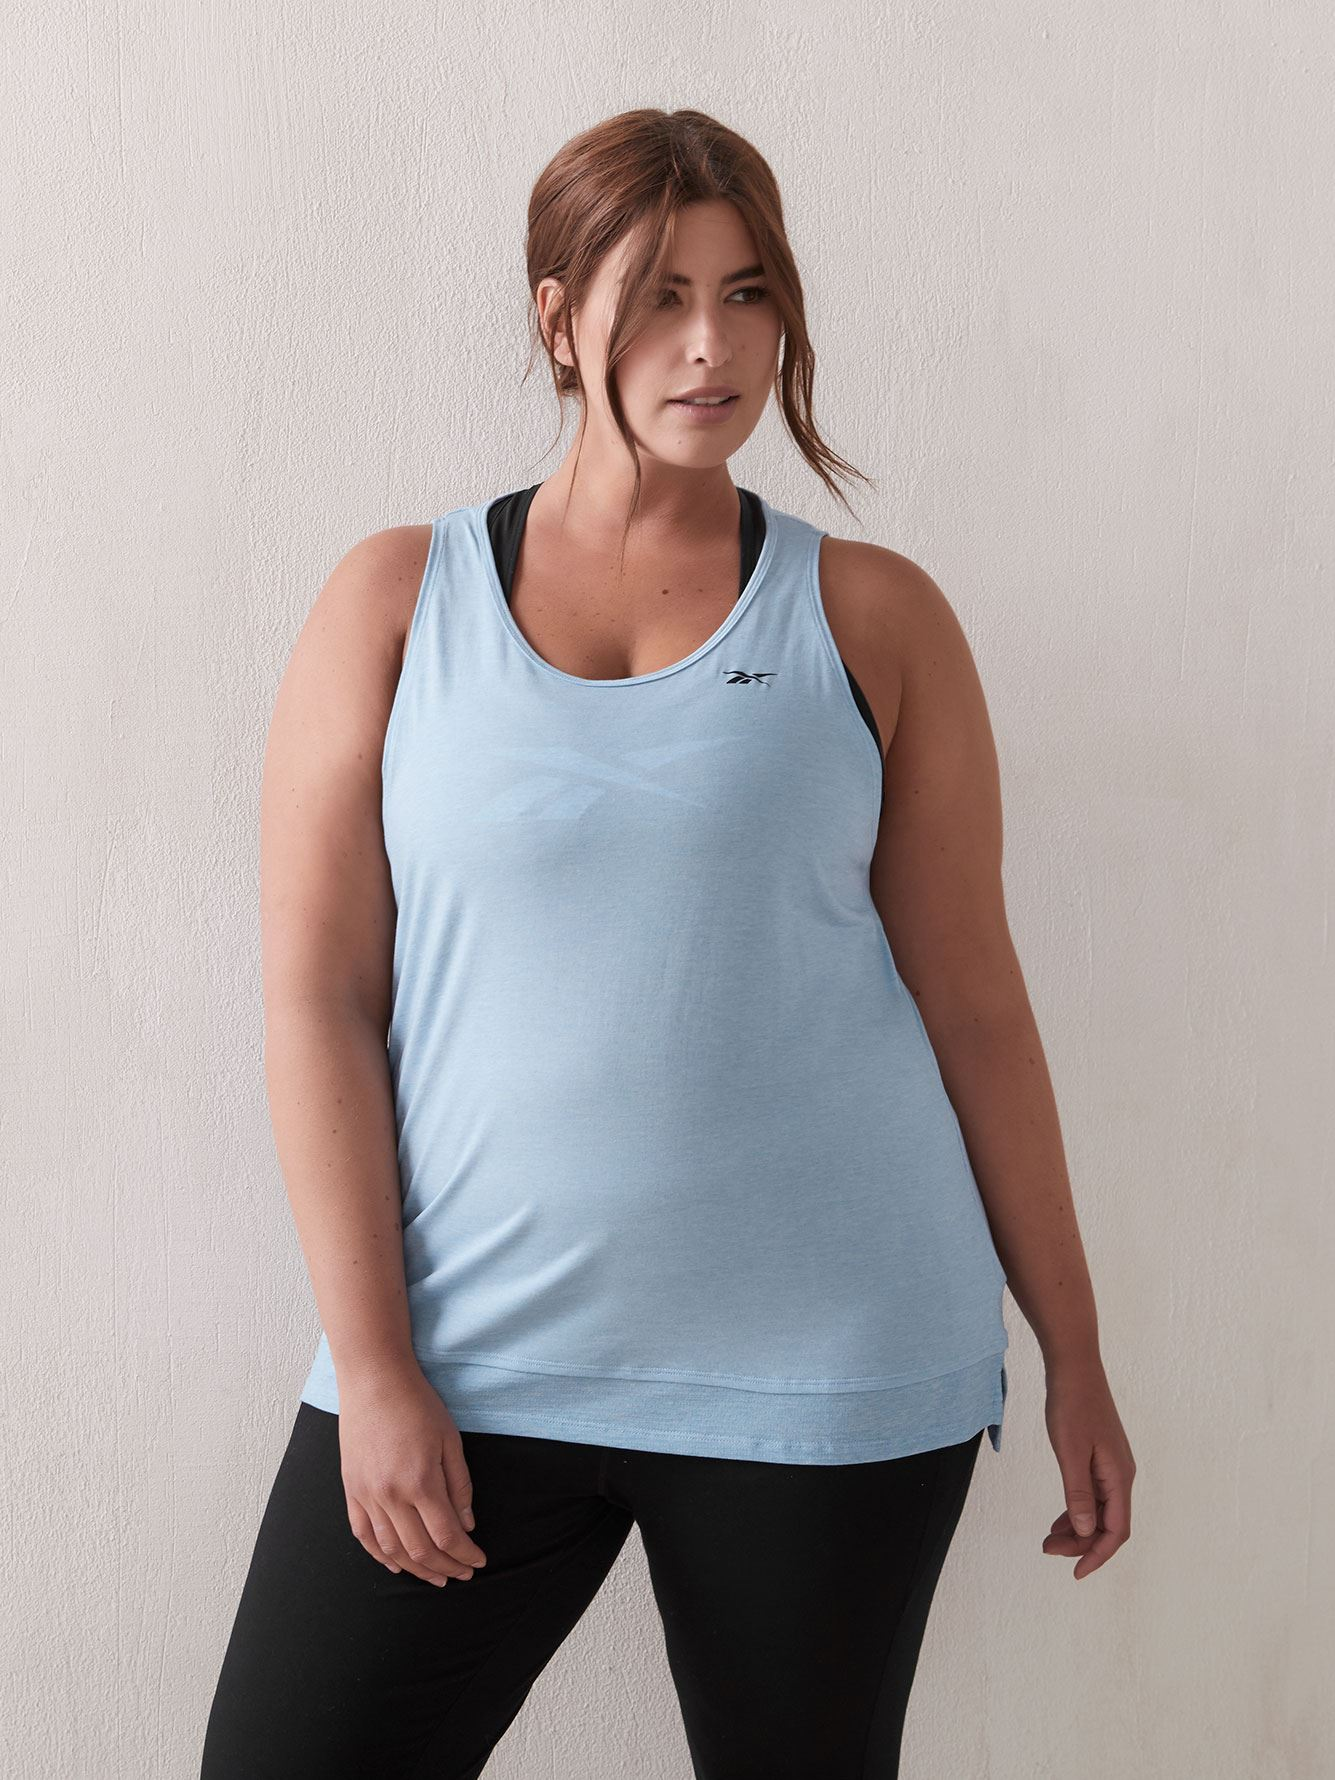 ActiveChill Cotton Training Tank Top - Reebok